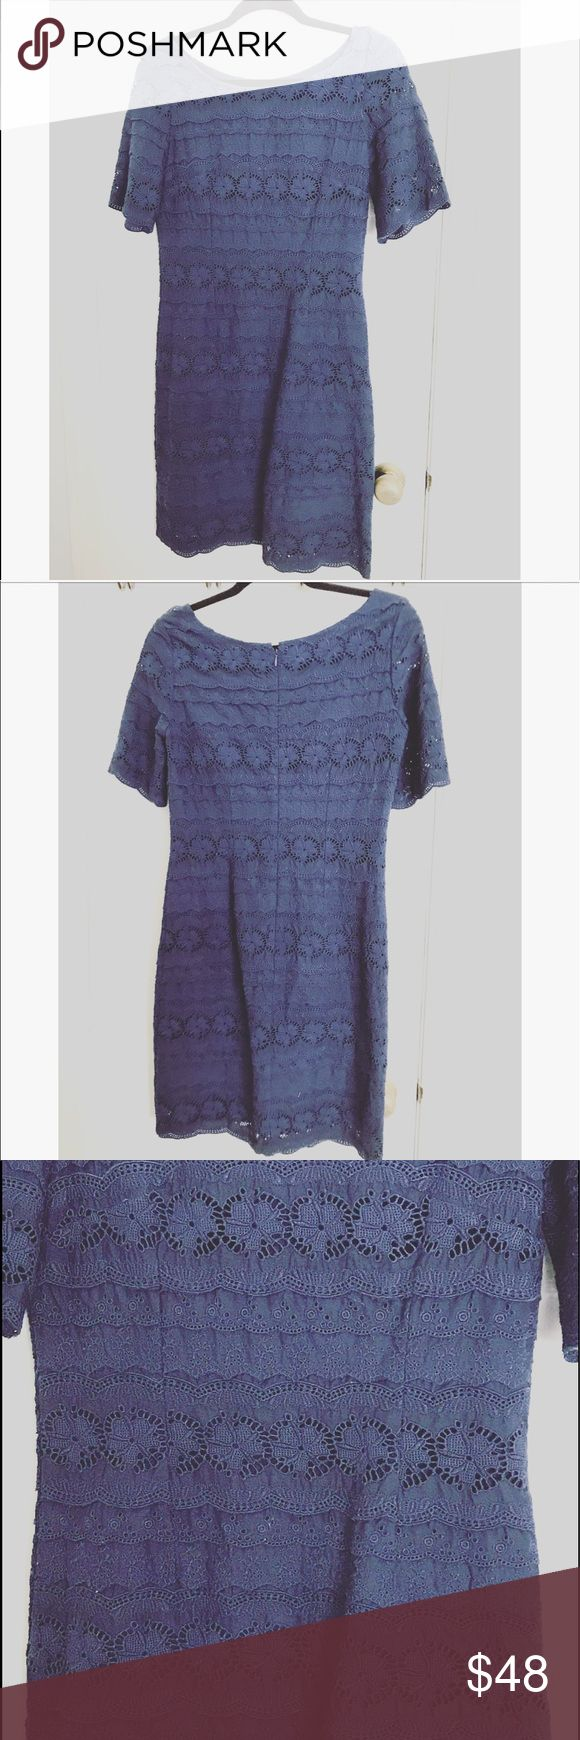 {Banana Republic} lace crochet dress Great condition . Size 2 . Such a cute flirty and feminine dress, gives such a bohemian feel to it! Your go to weekend dress. Zips in the back for closure. 050517559 Banana Republic Dresses